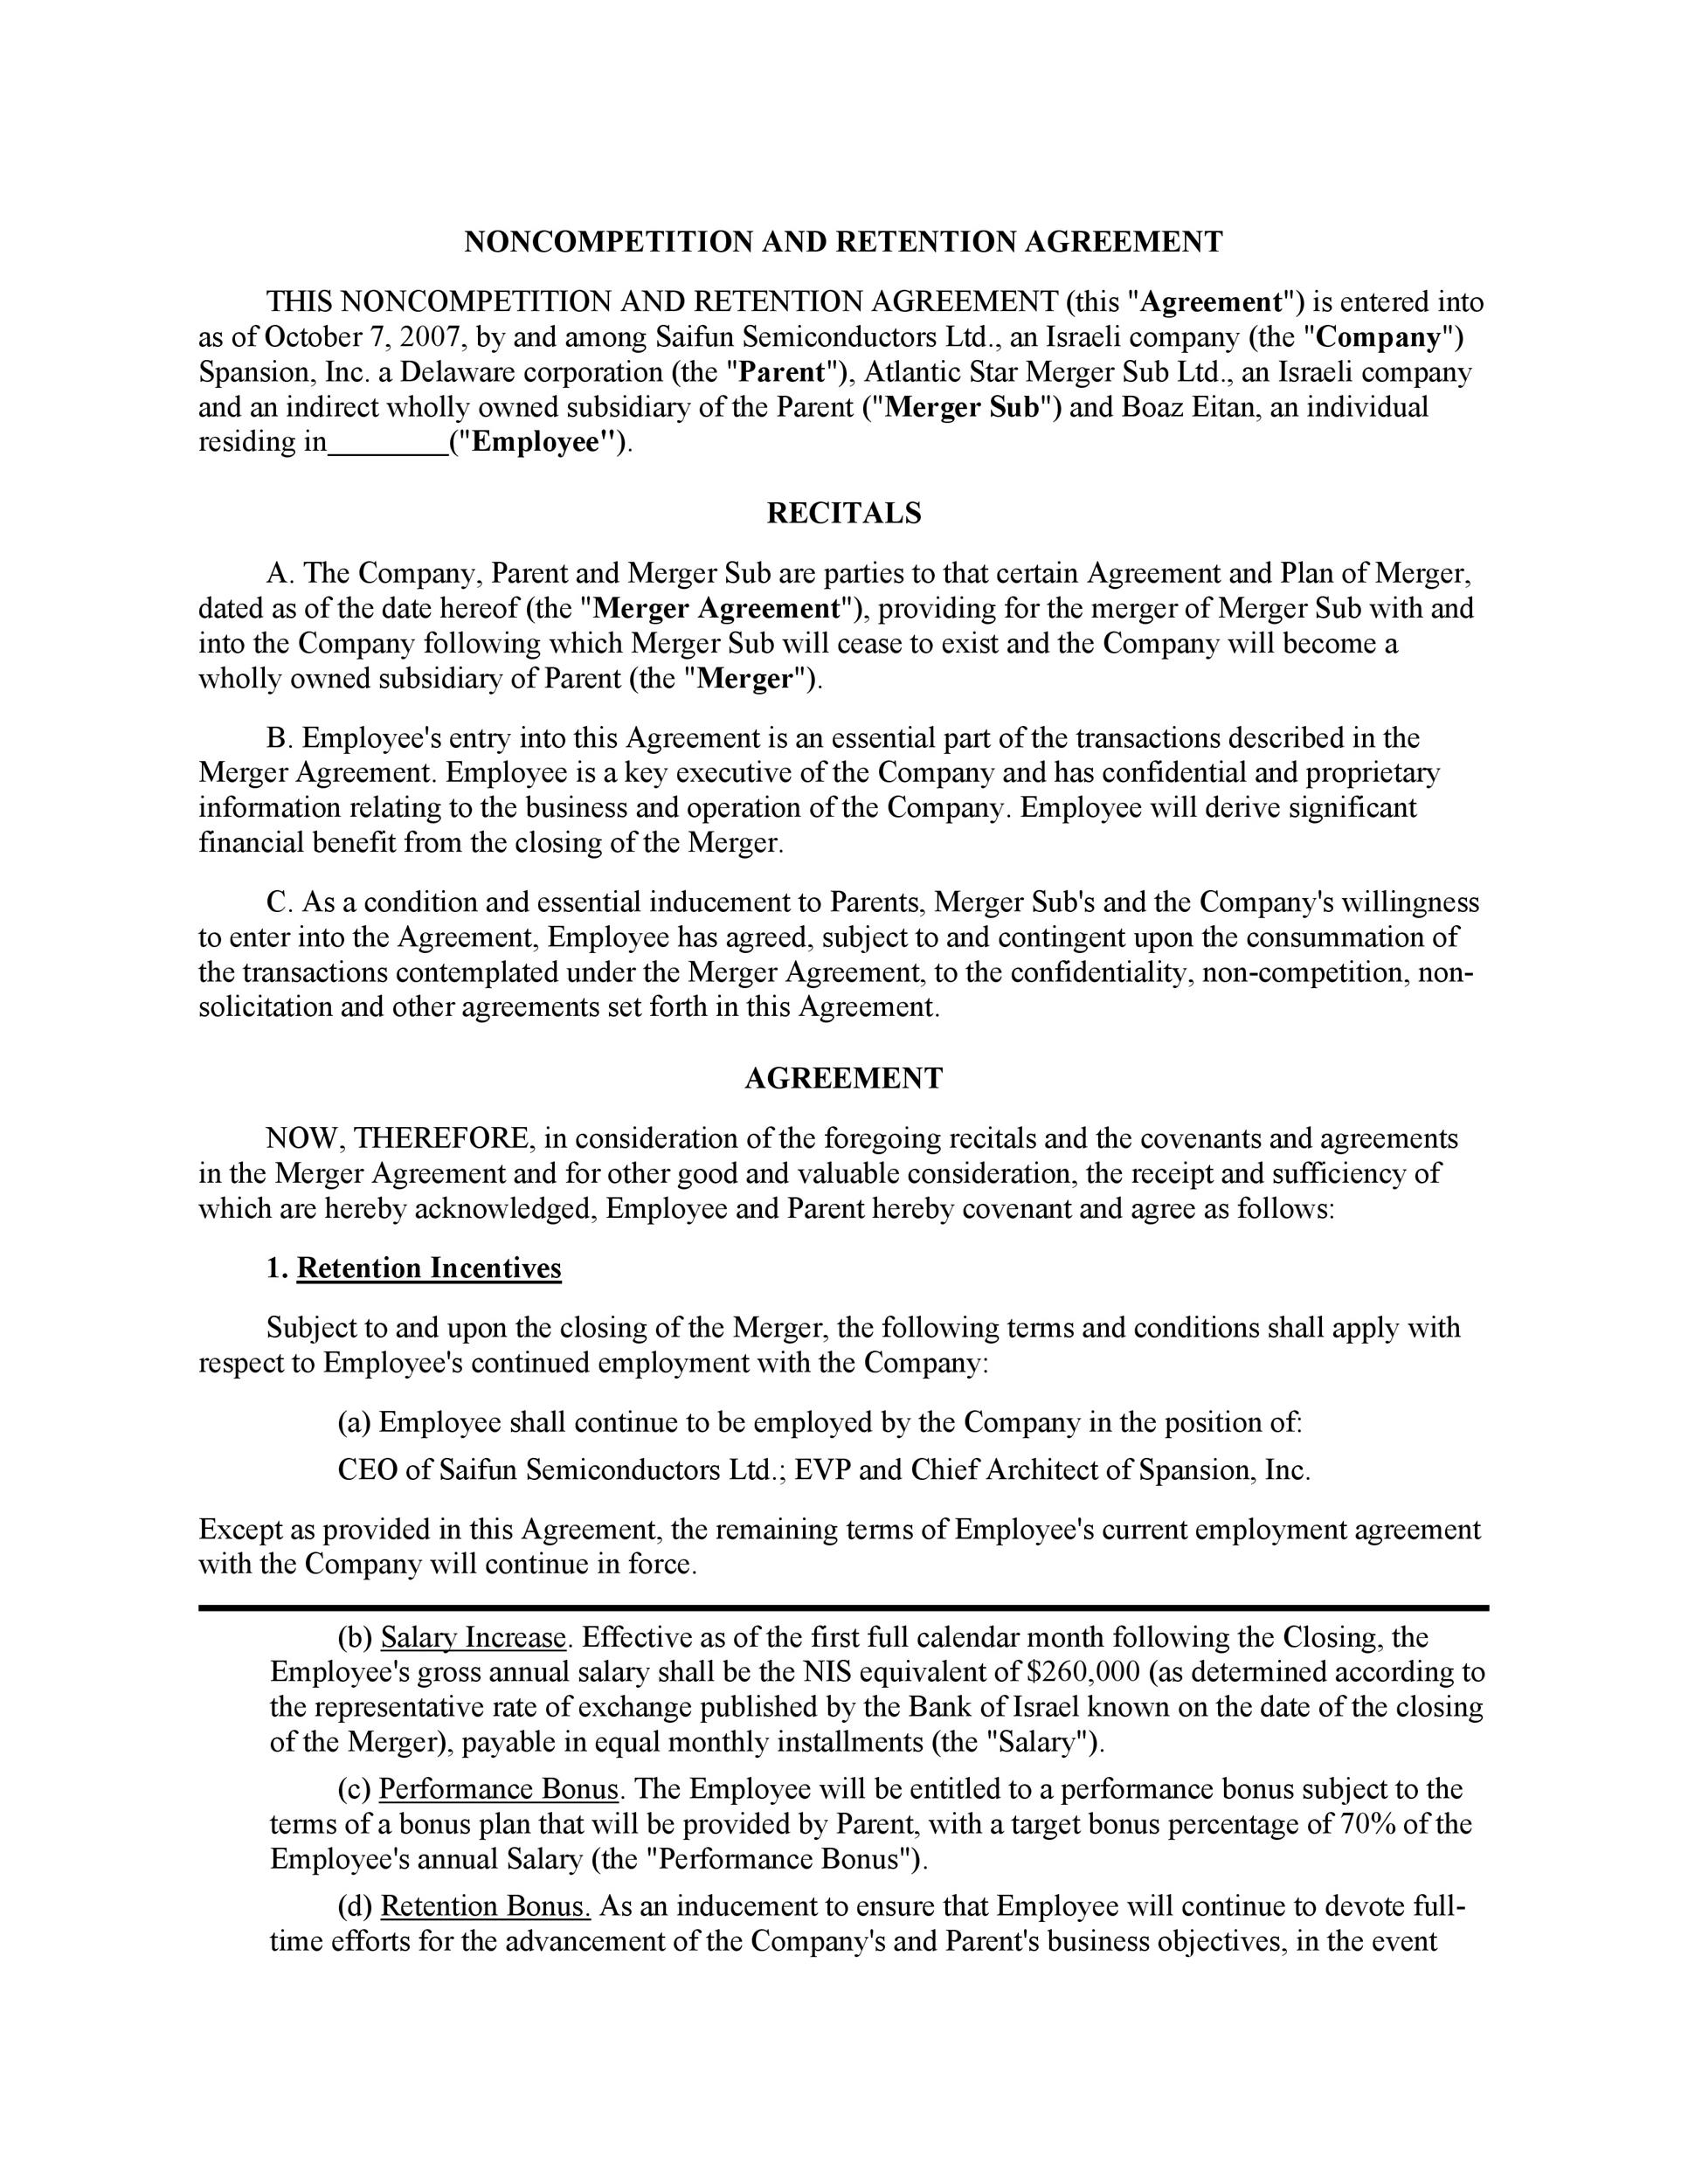 Non-Compete Agreement Template 14